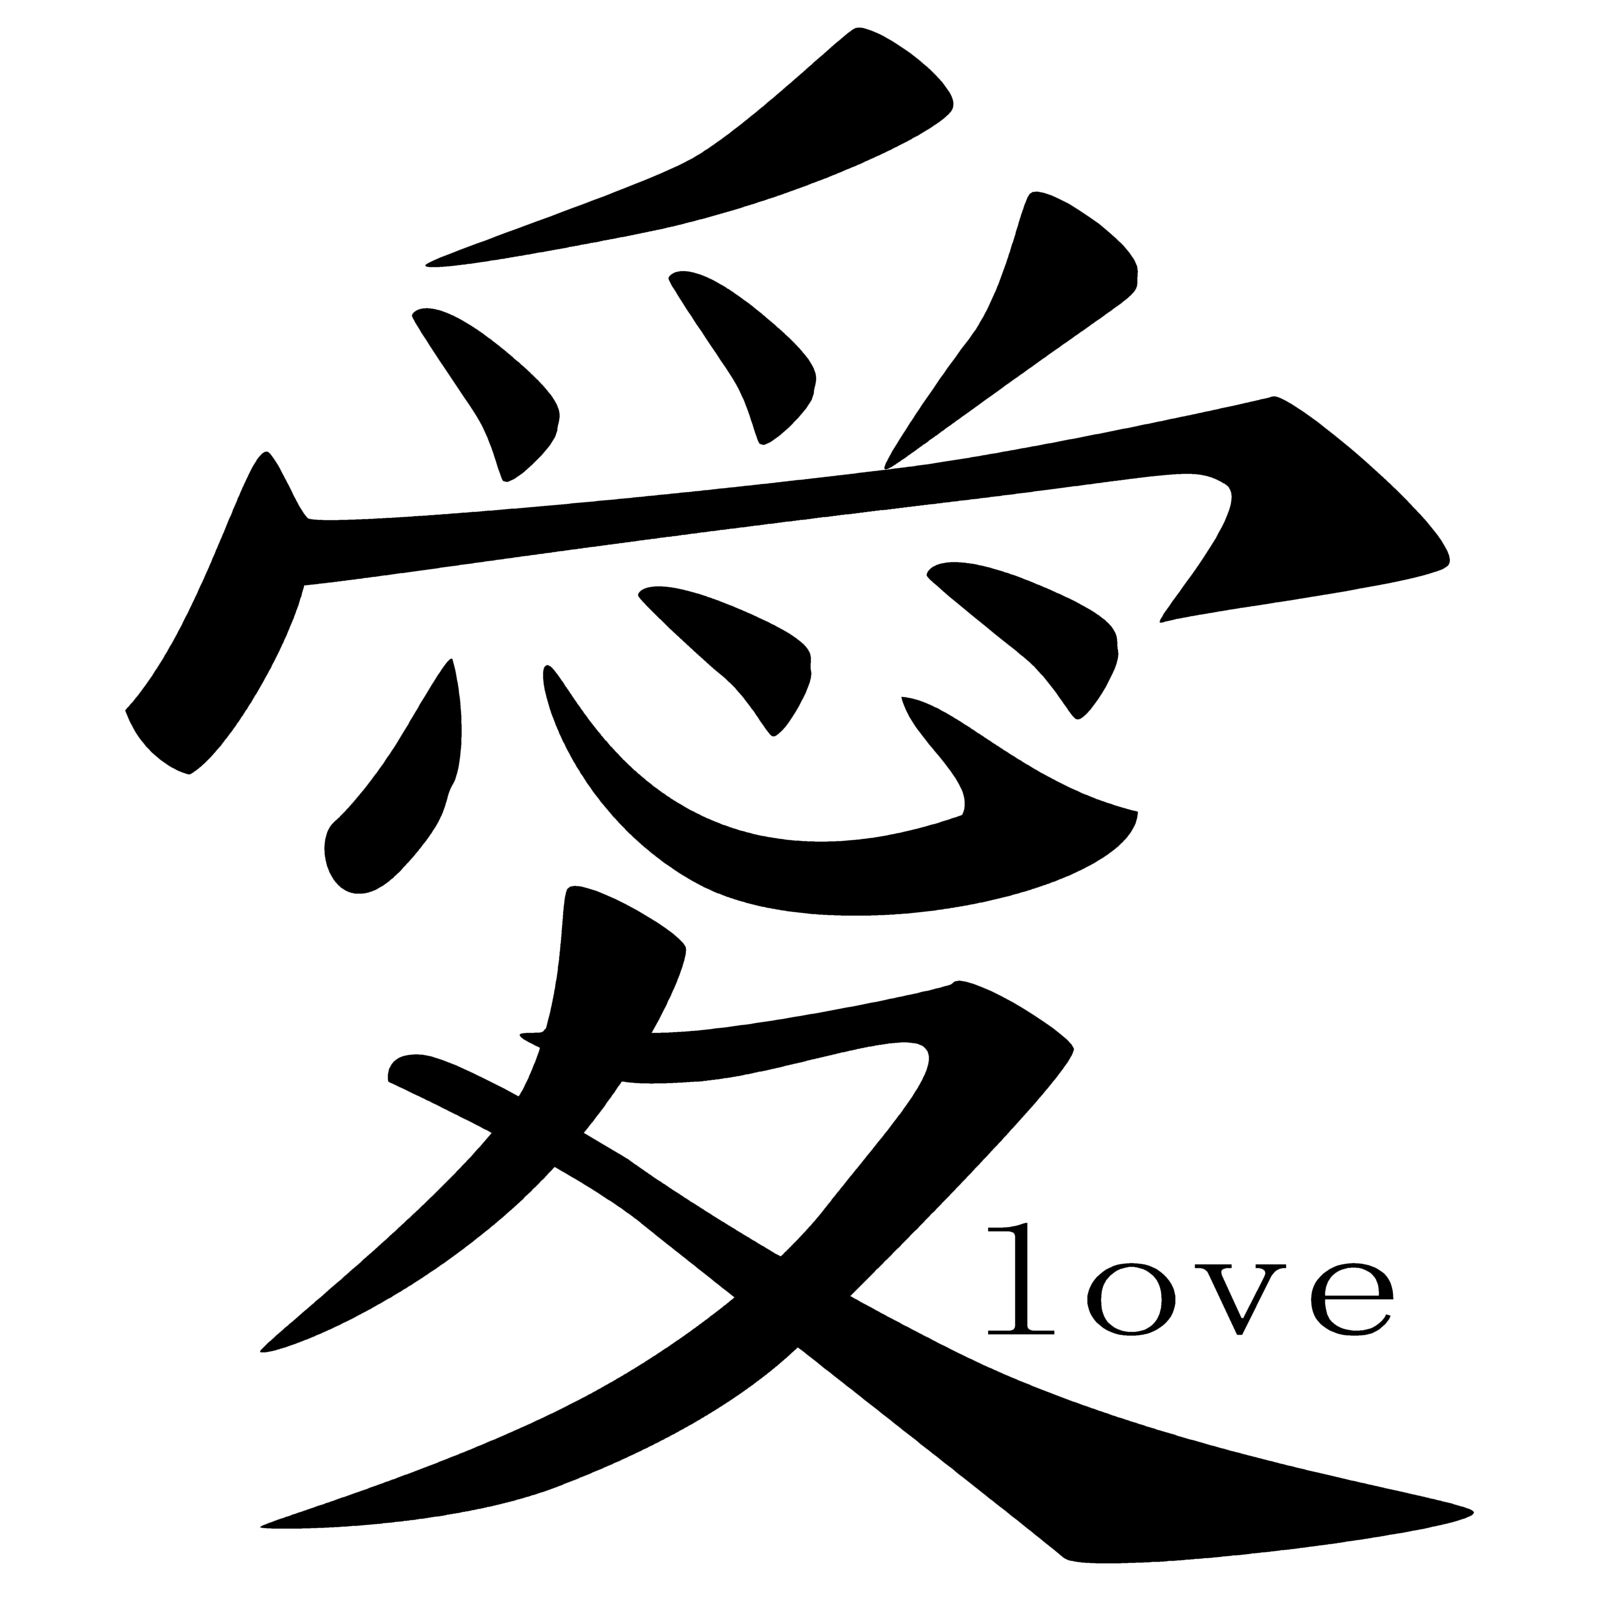 chinese character love | Index of /misc_pixs/v-day ...